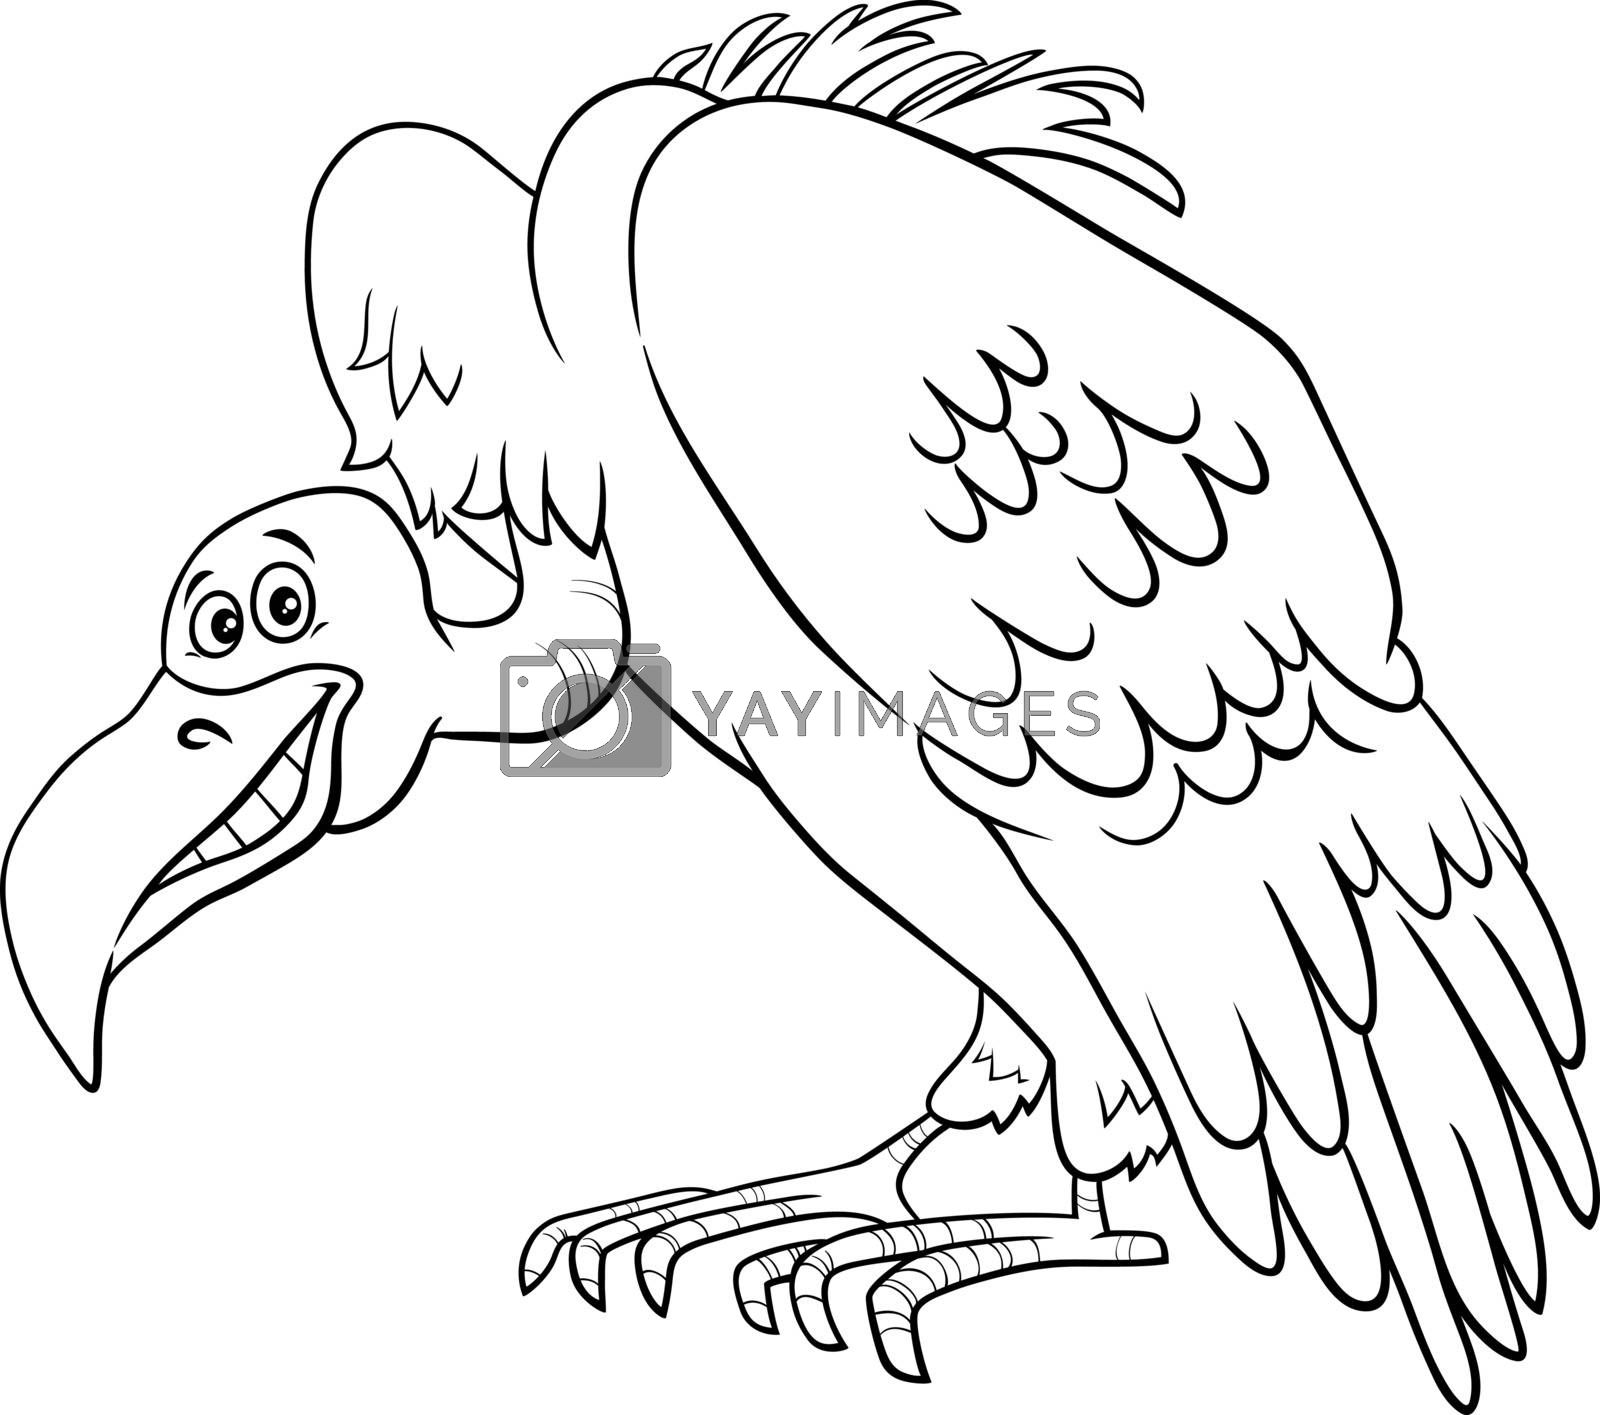 Black and White Cartoon Illustration of Vulture Bird Wild Animal Character Coloring Book Page